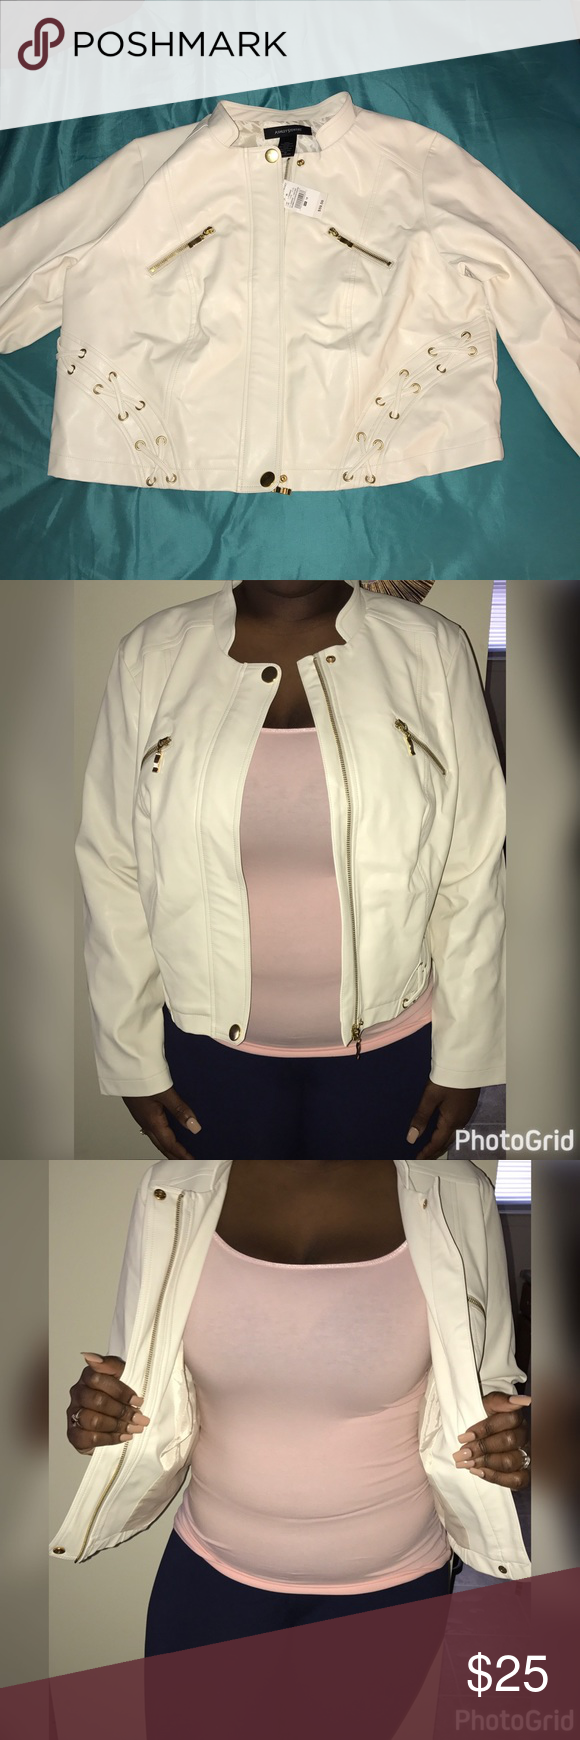 Leather jacket size 18 - Off White Faux Leather Jacket Size 18 Gold Zipper Details Never Worn Tag